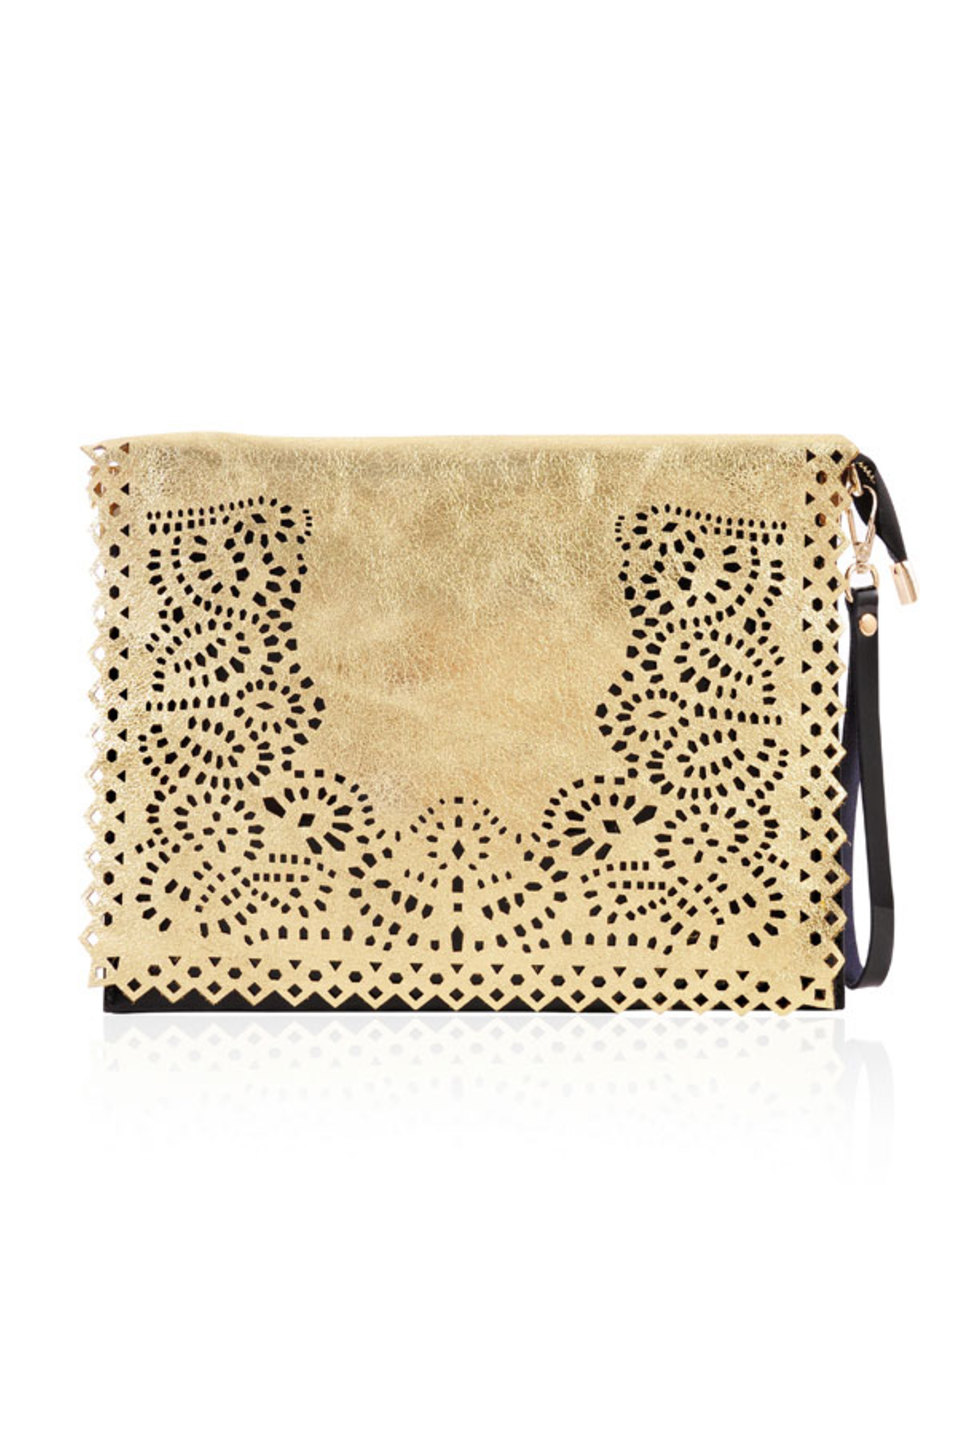 Night Rider Gold and Black Laser Cut Clutch Bag